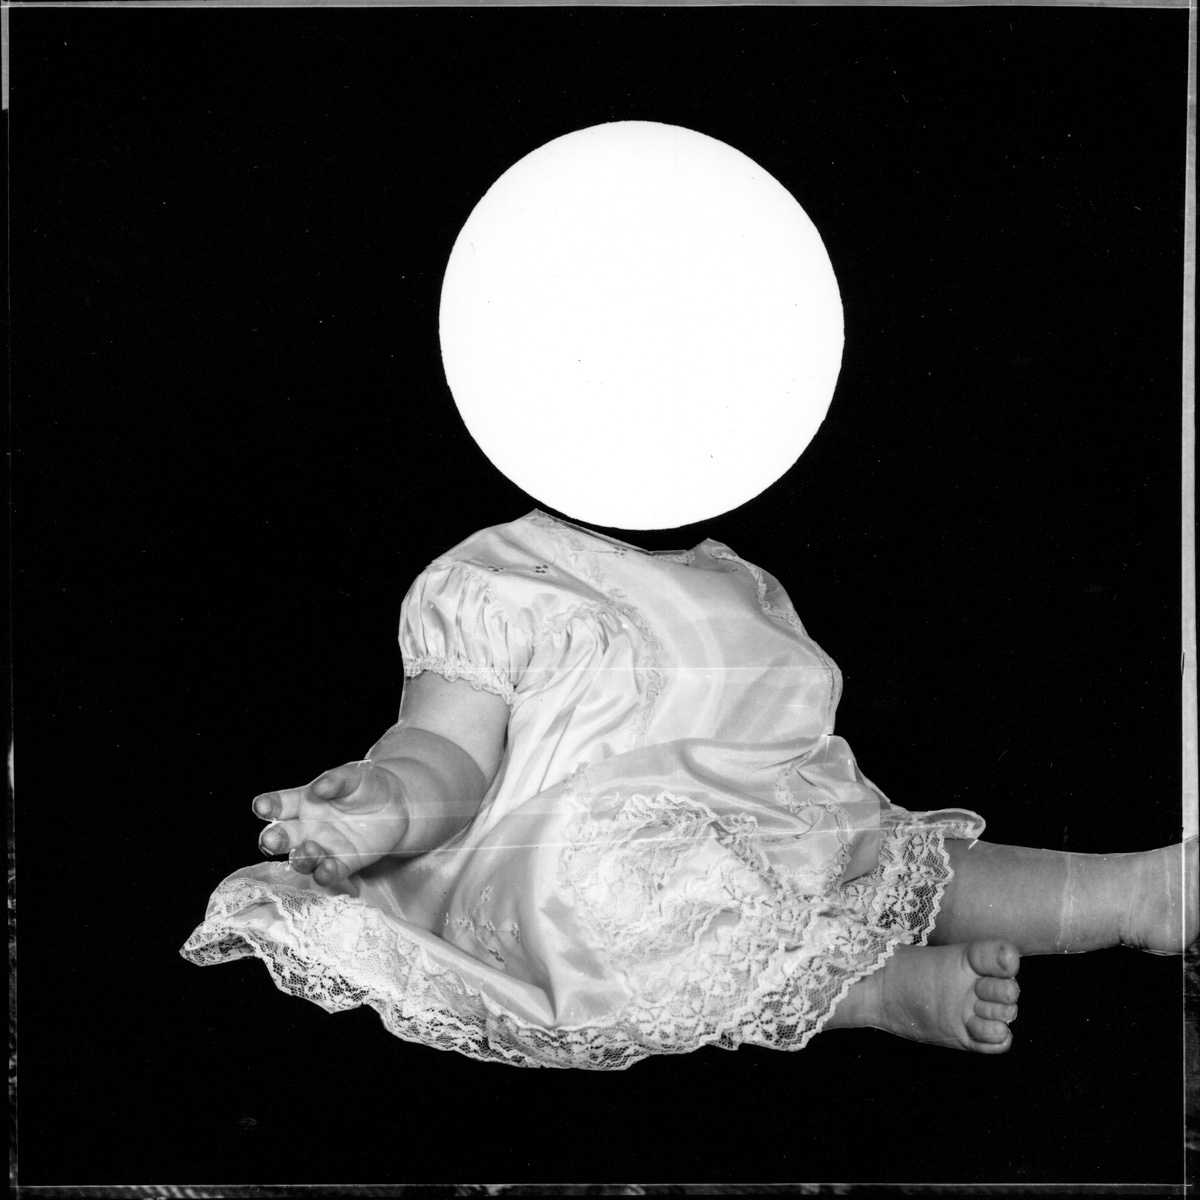 """""""0094"""" from the series The Children of Mars, by William Mokrynski"""